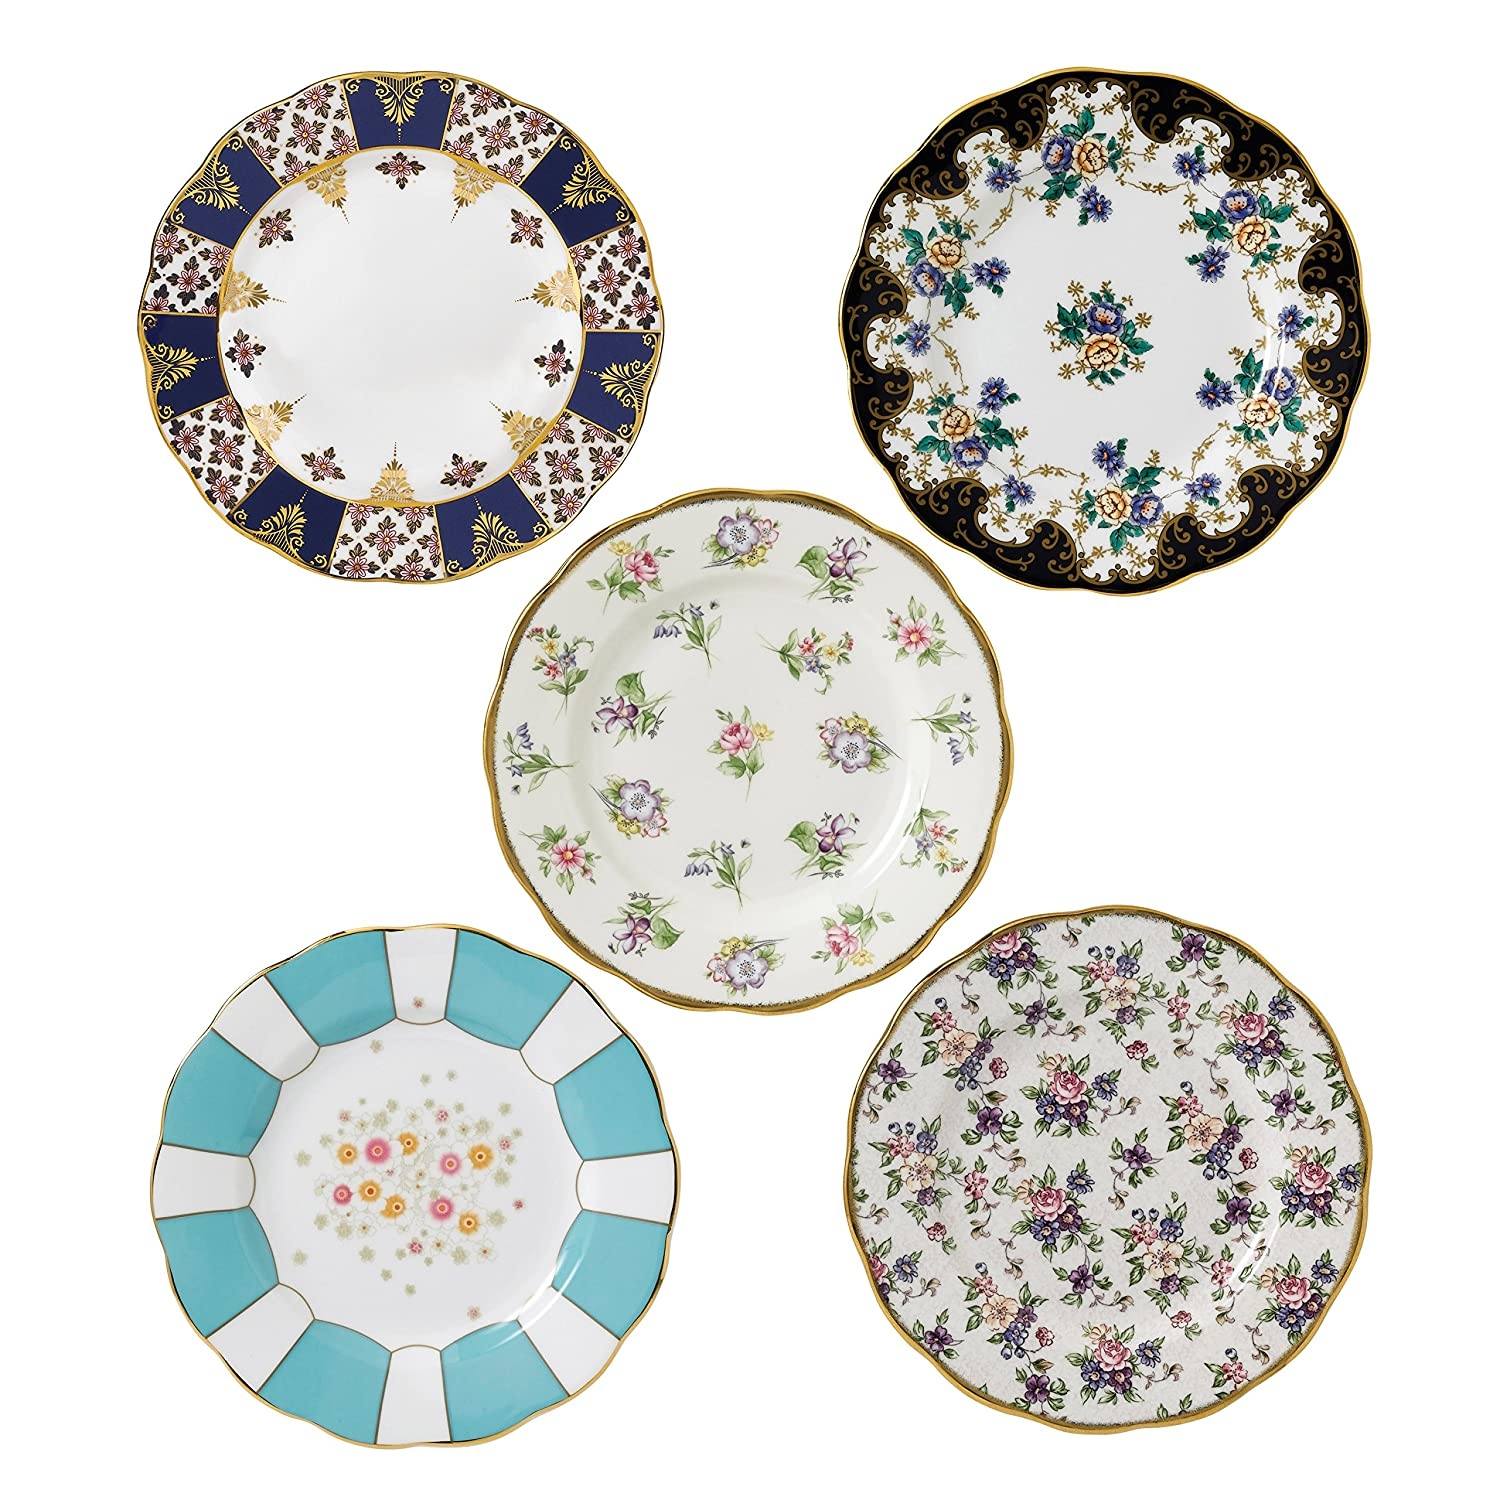 100 Years by Royal Albert 1900-1940 Plate 20cm/8in, Set of 5 Royal Doulton 40017560